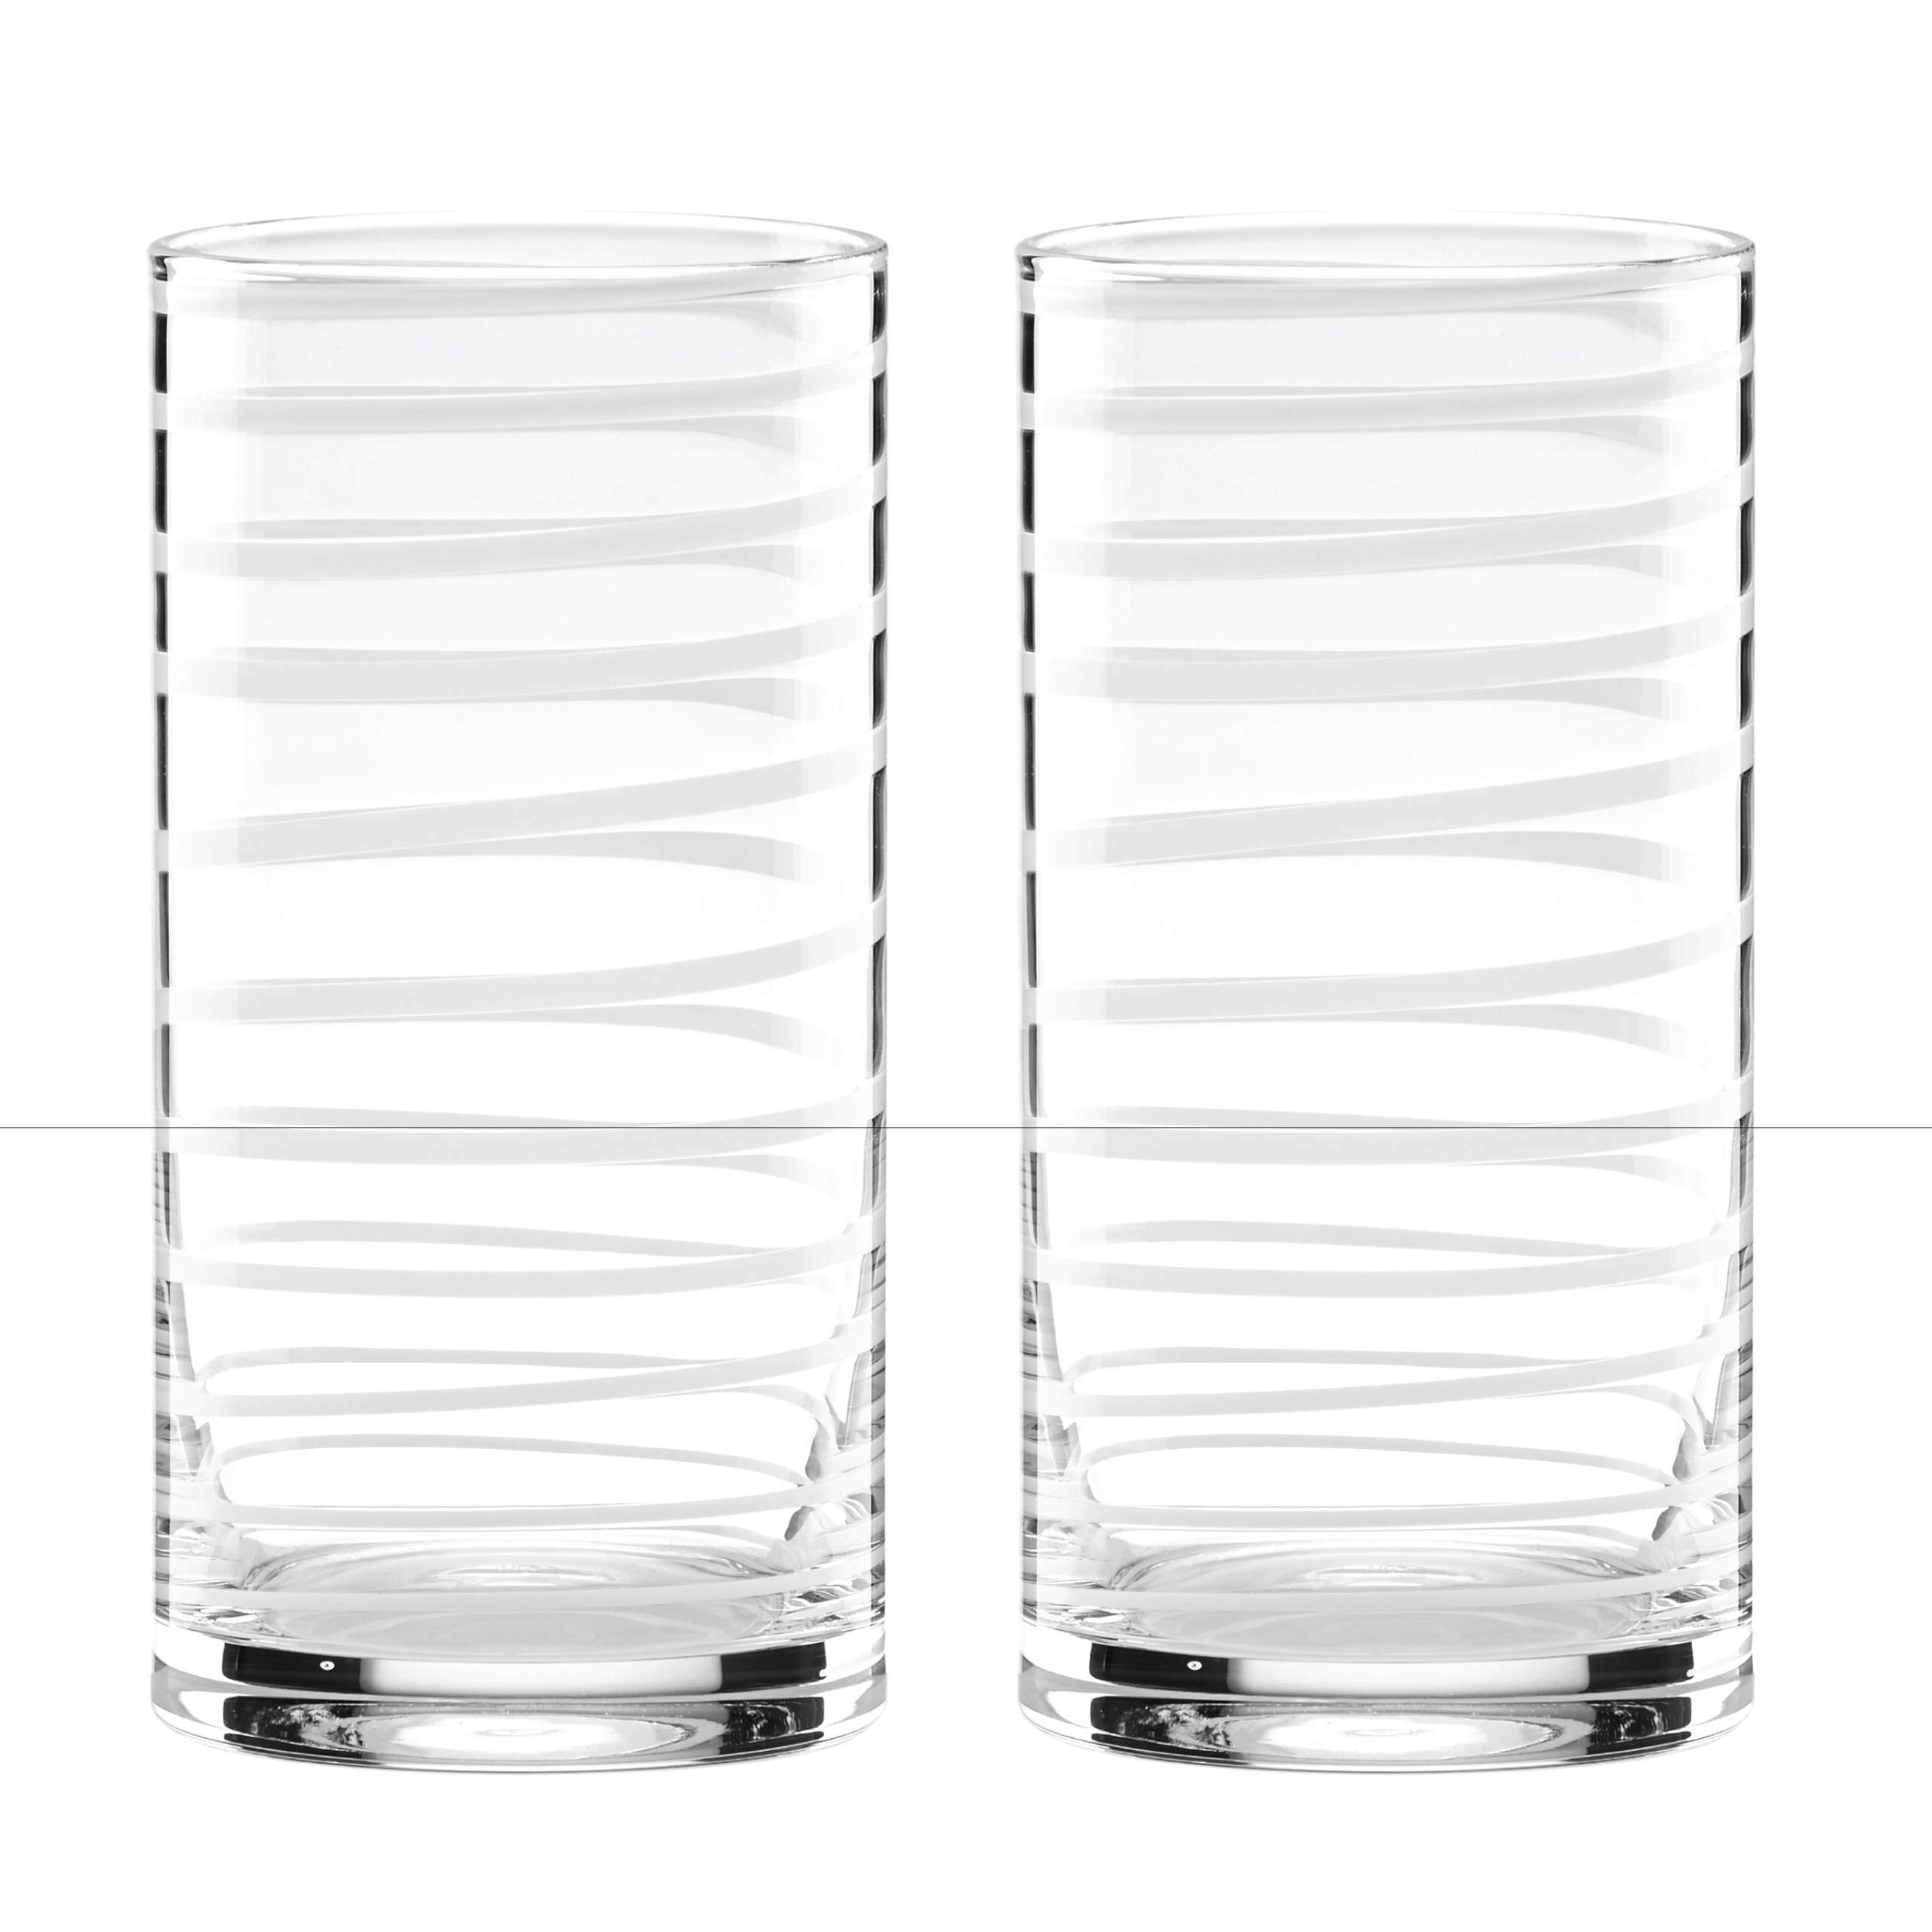 Kate Spade New York 871221 Charlotte Street highball glass